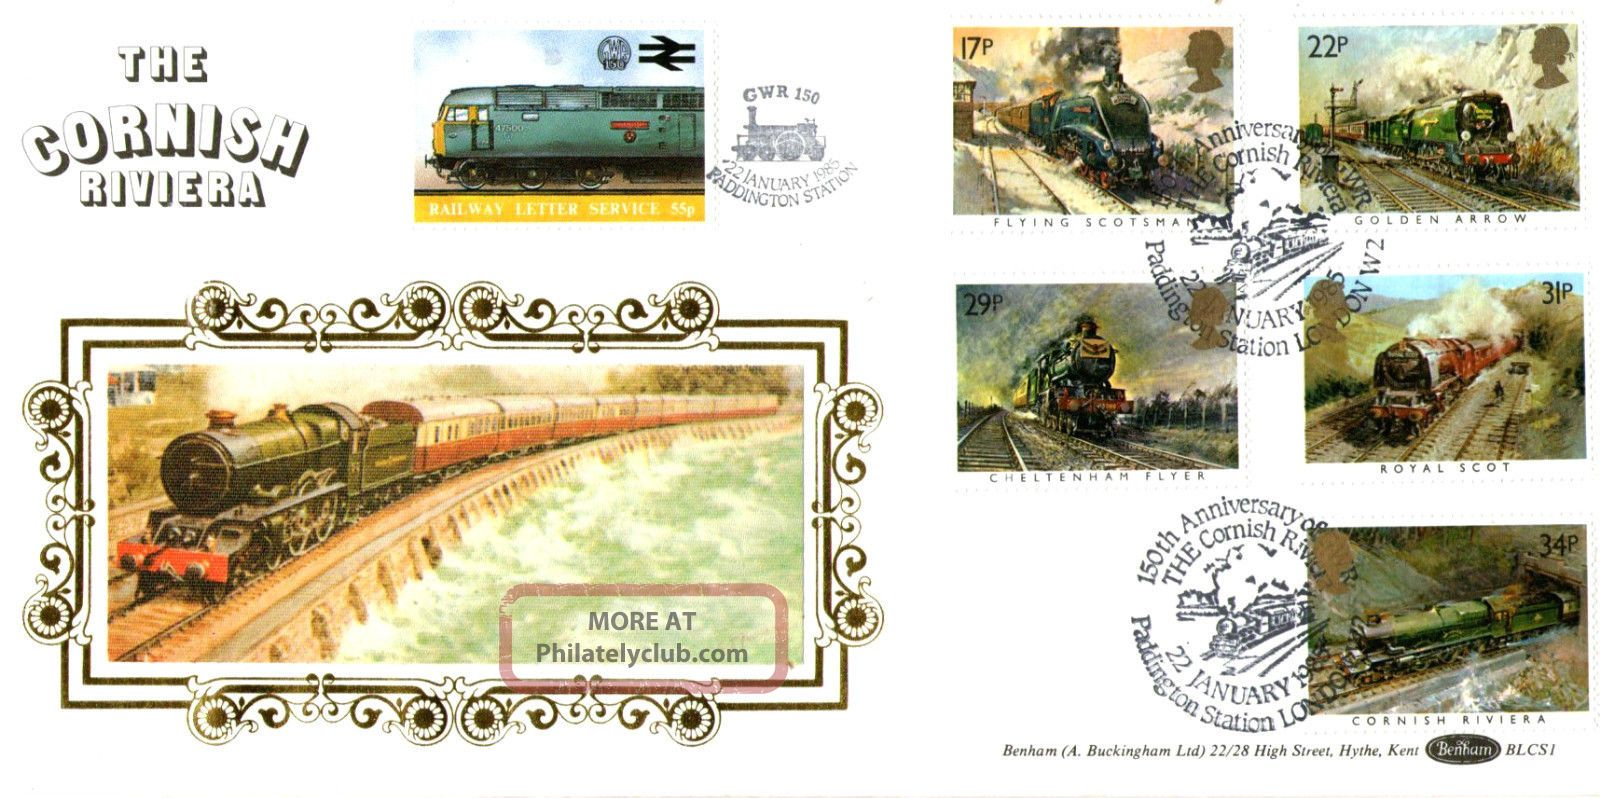 22 January 1985 Famous Trains Benham Bls 1 Le First Day Cover Cornish Riviera Transportation photo